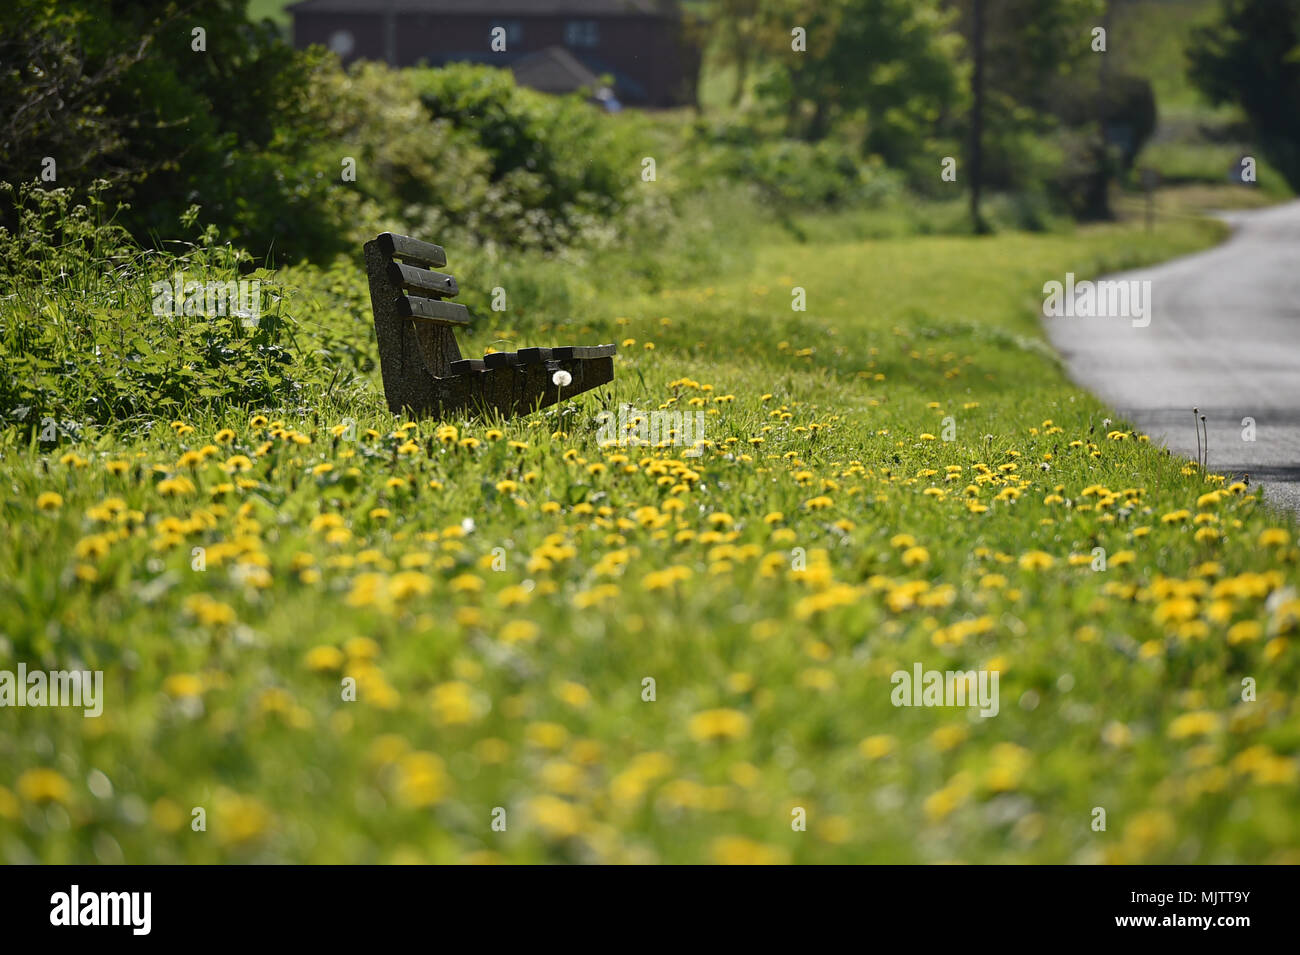 Bench surrounded by Yellow dandelions in the Wiltshire village of Edington during the may bank holiday weekend - Stock Image